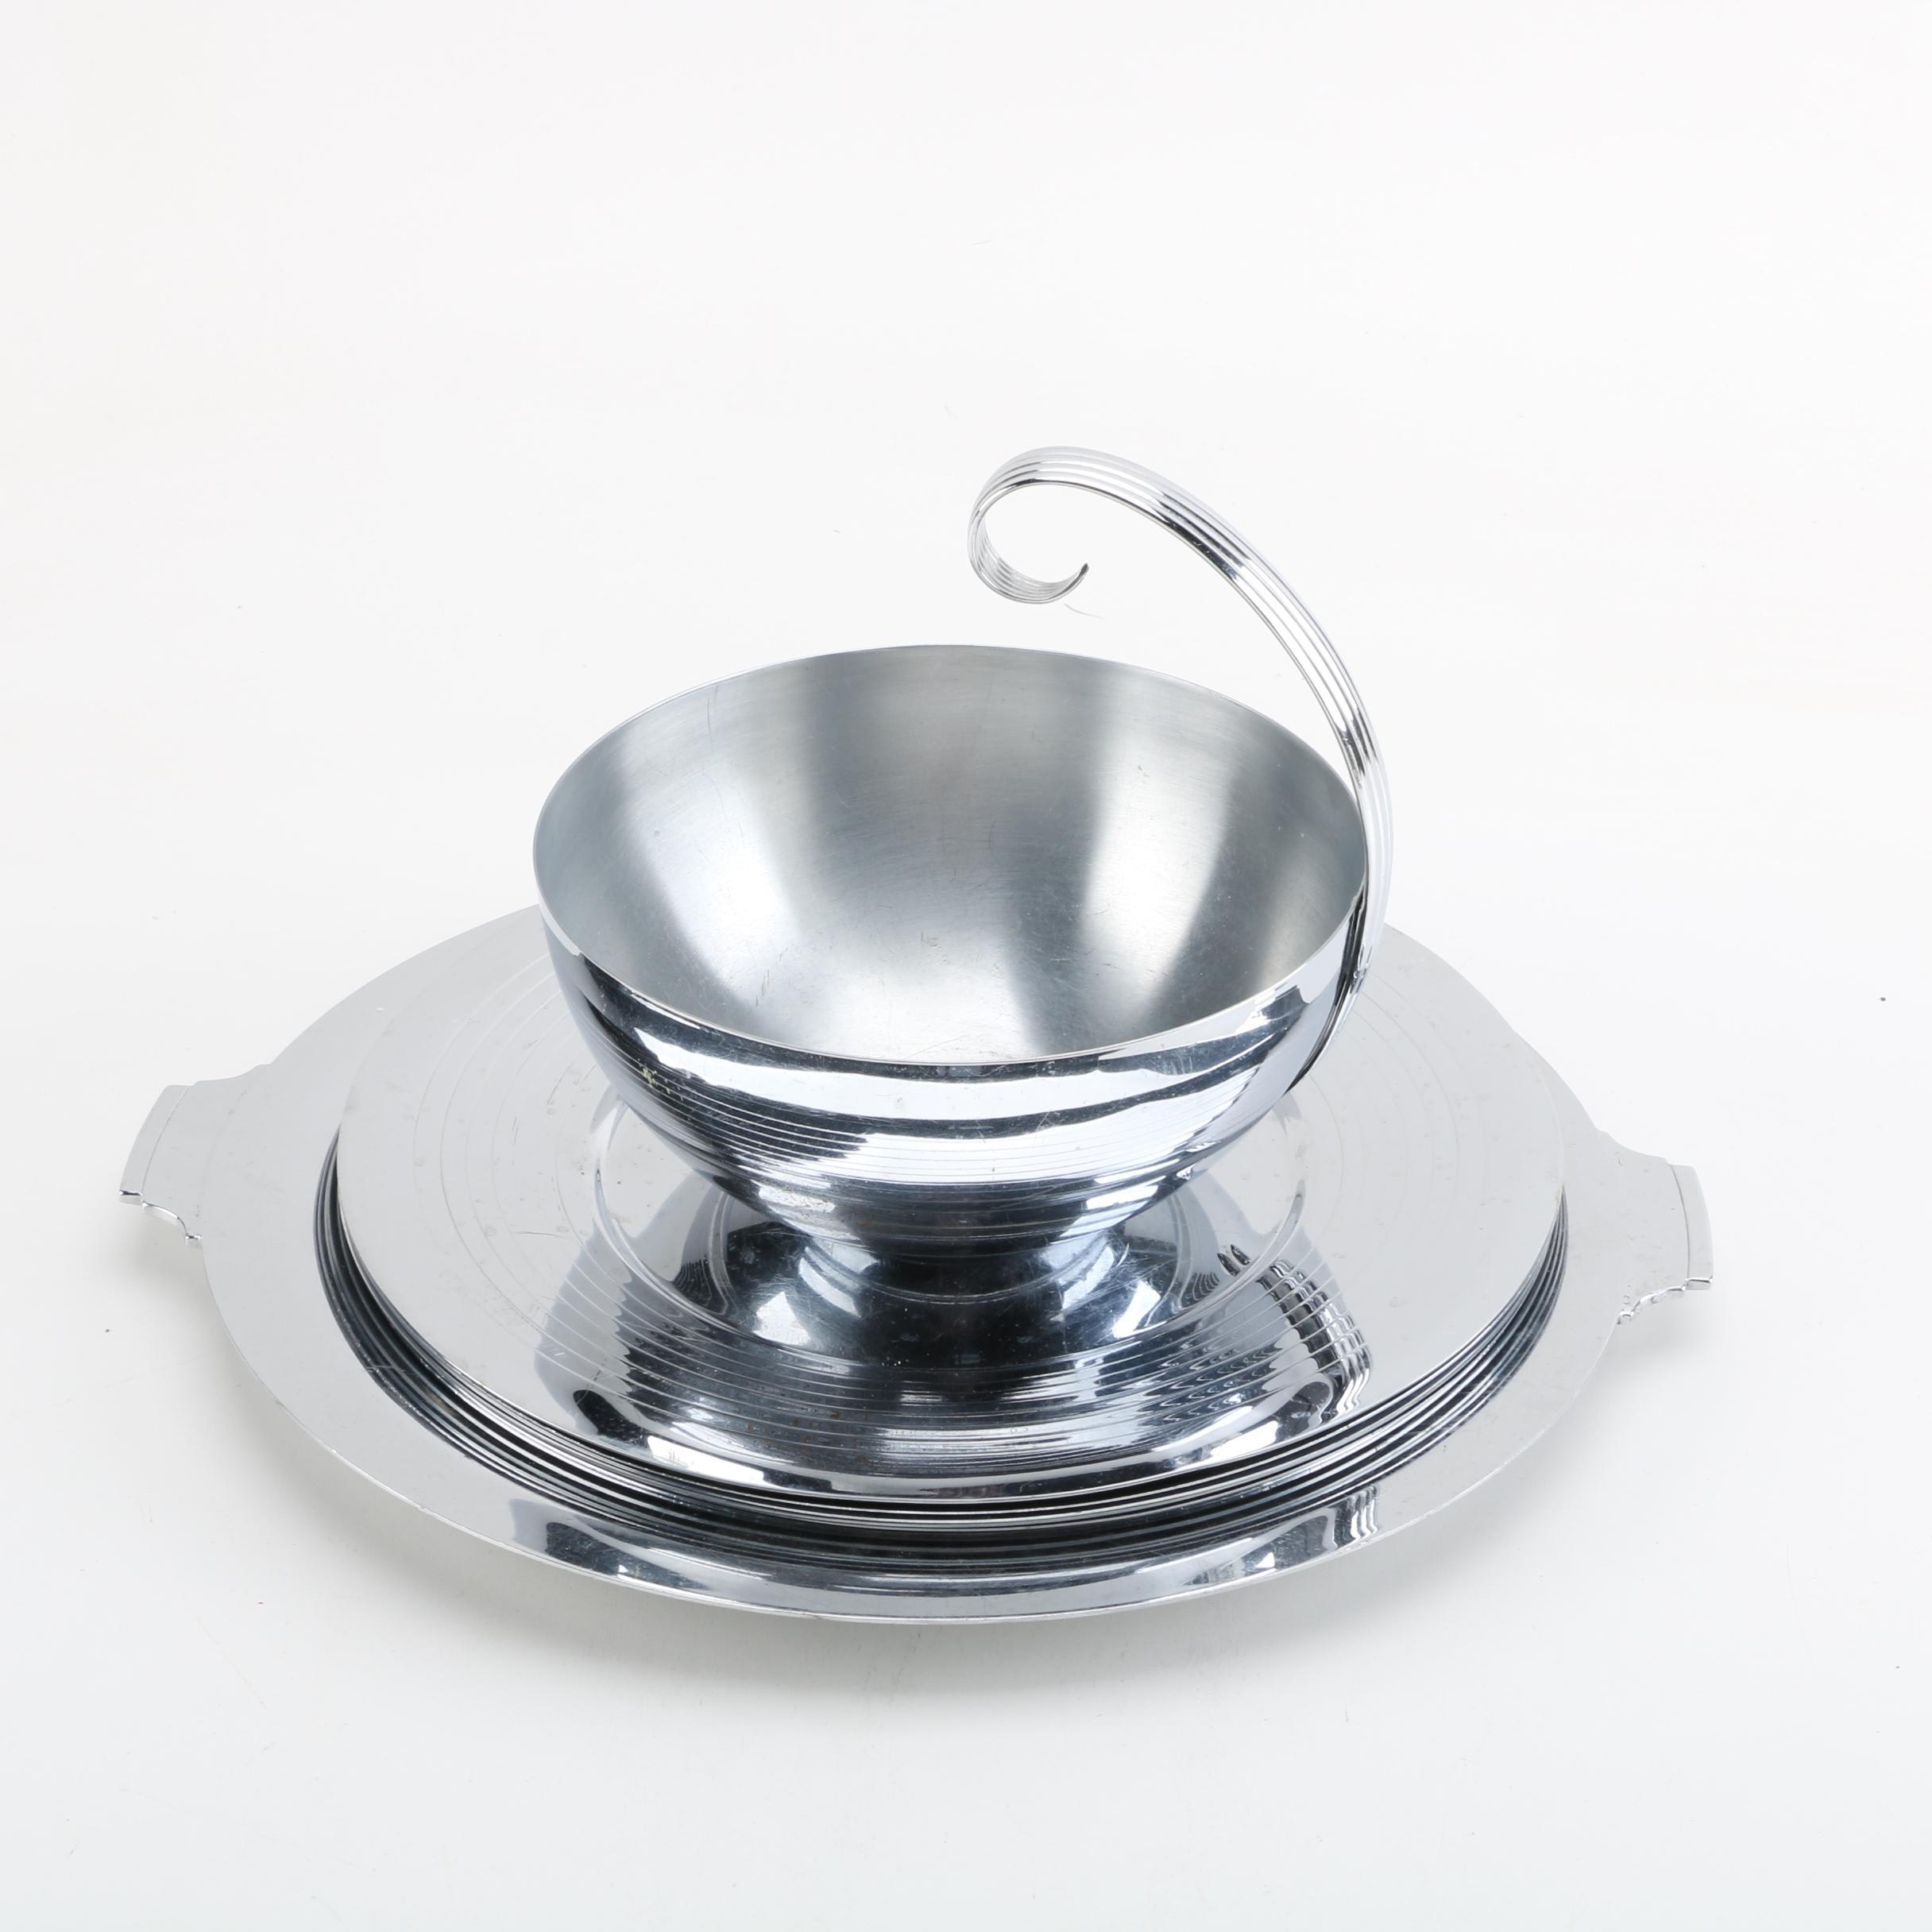 Chase Brass and Copper Company Chromed Metal Servingware